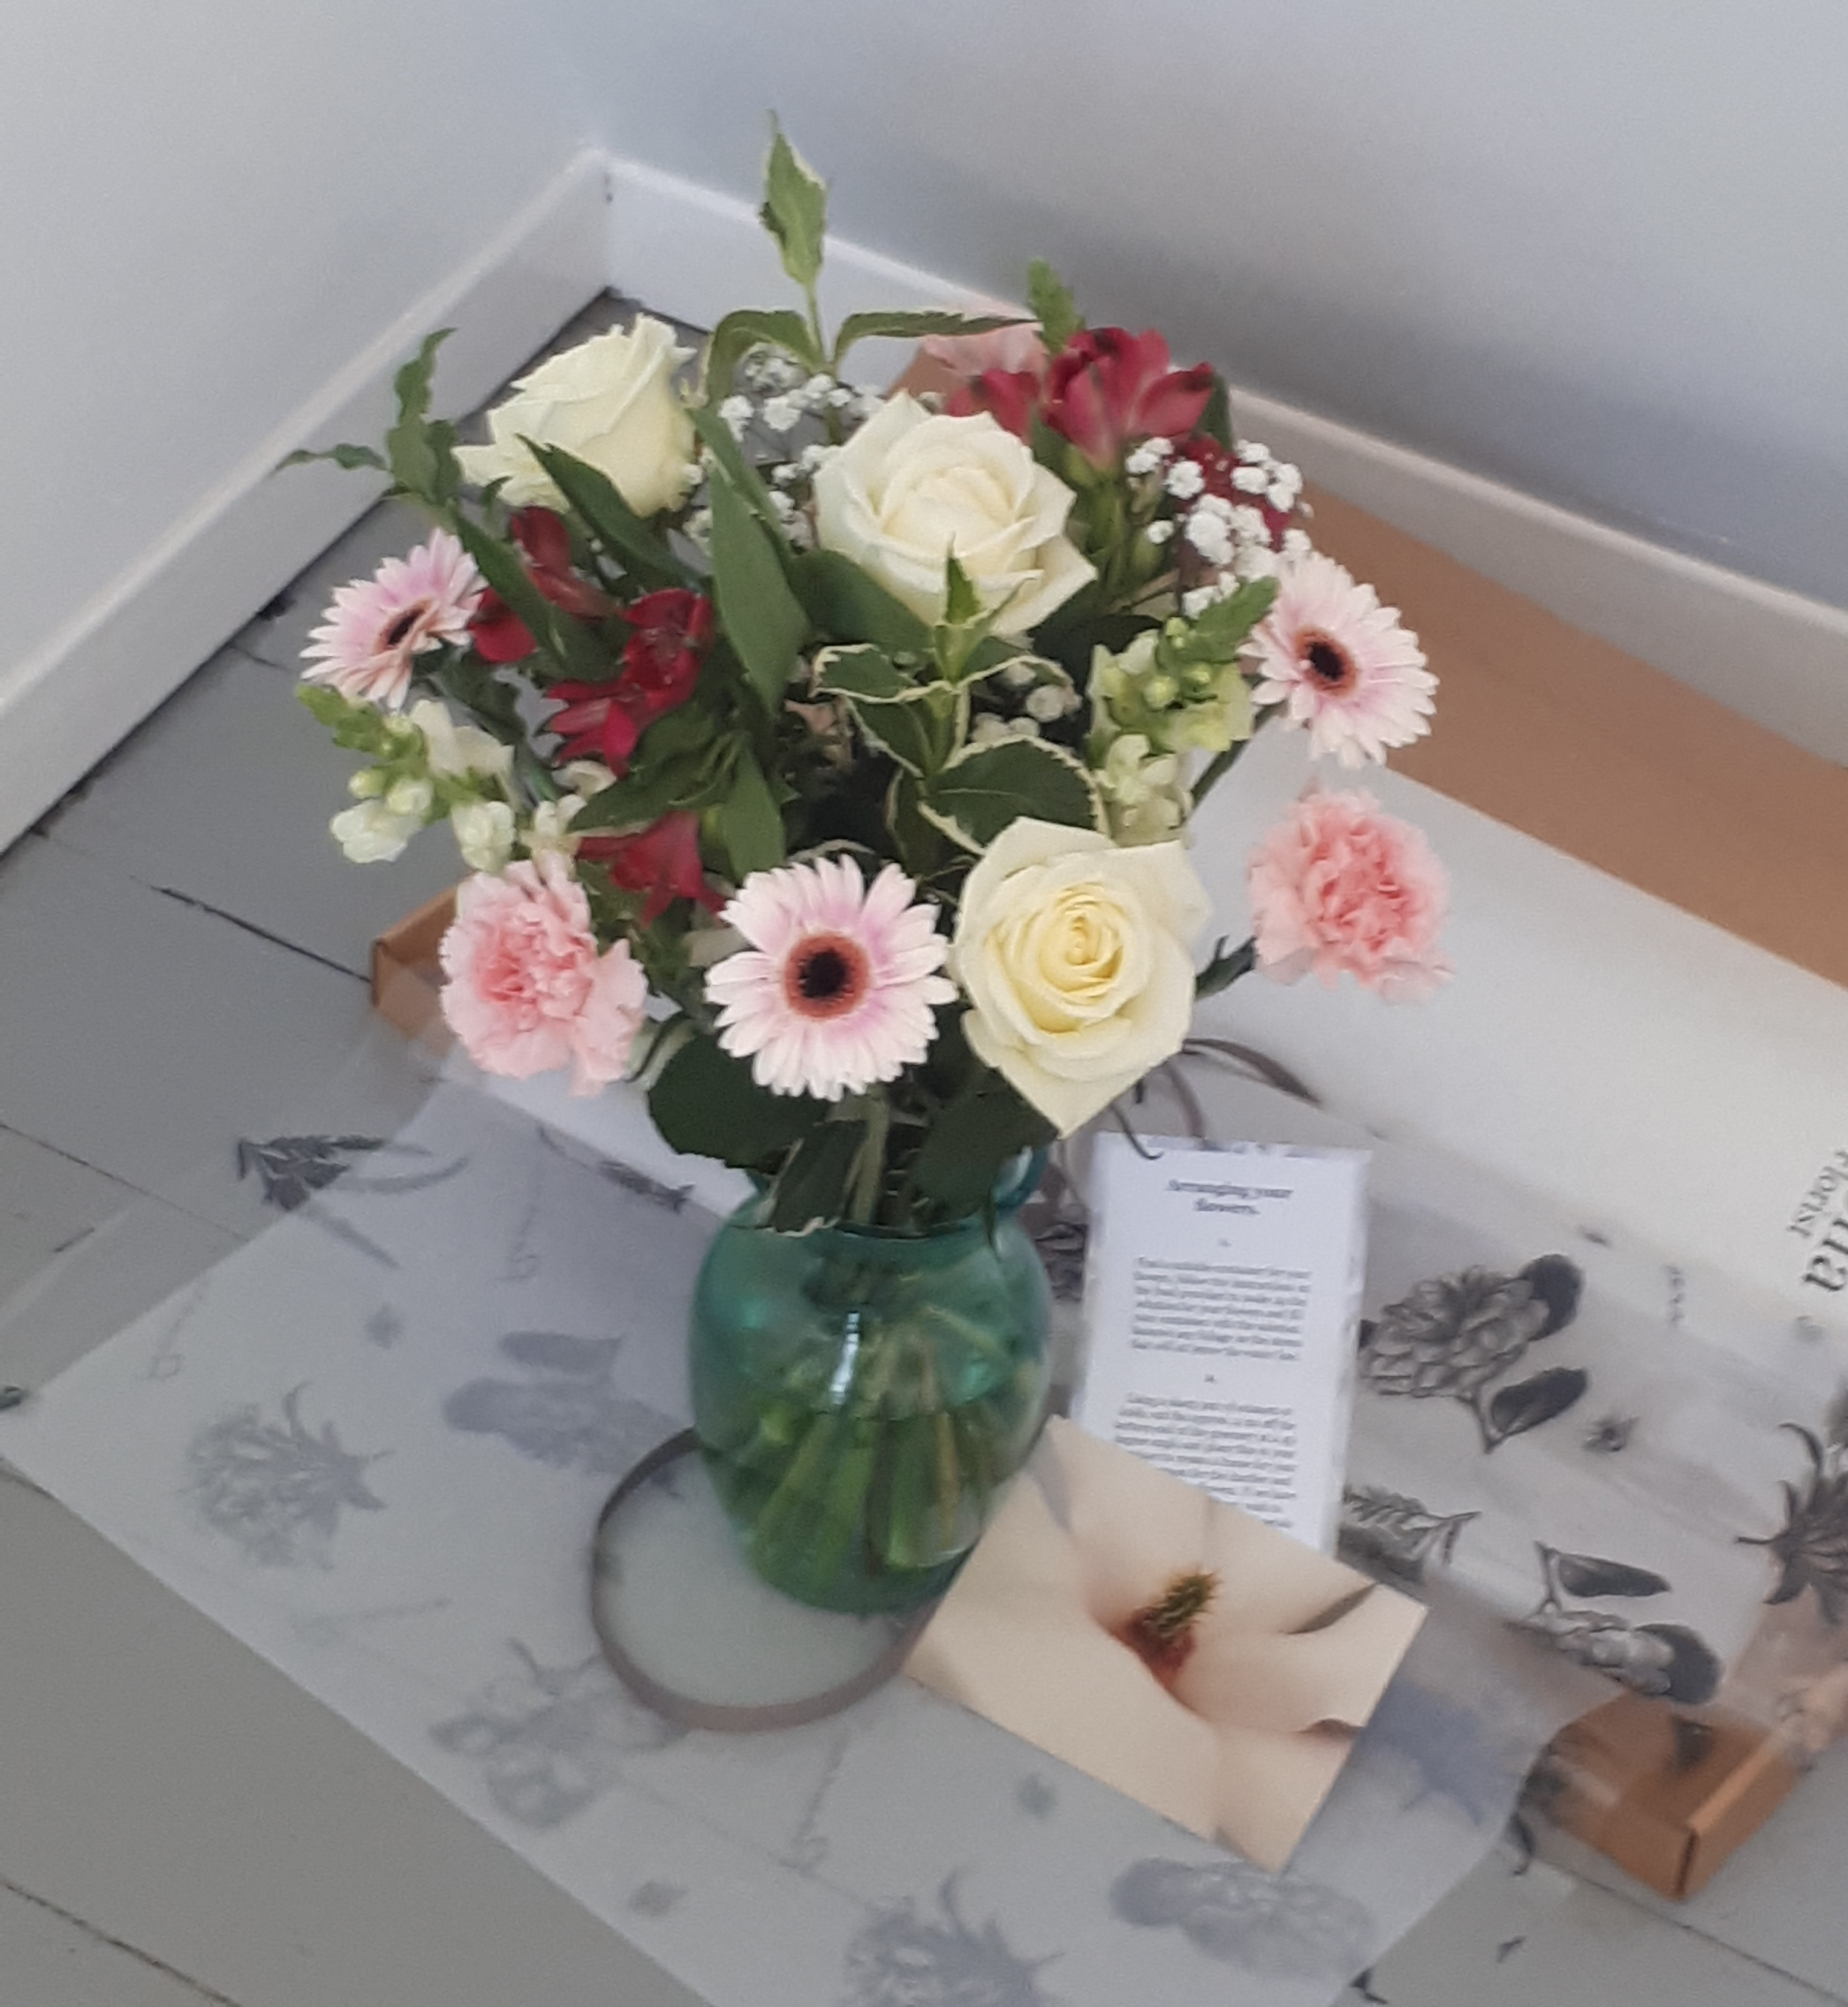 letterbox-flowers-3-month-subscription-competition-2